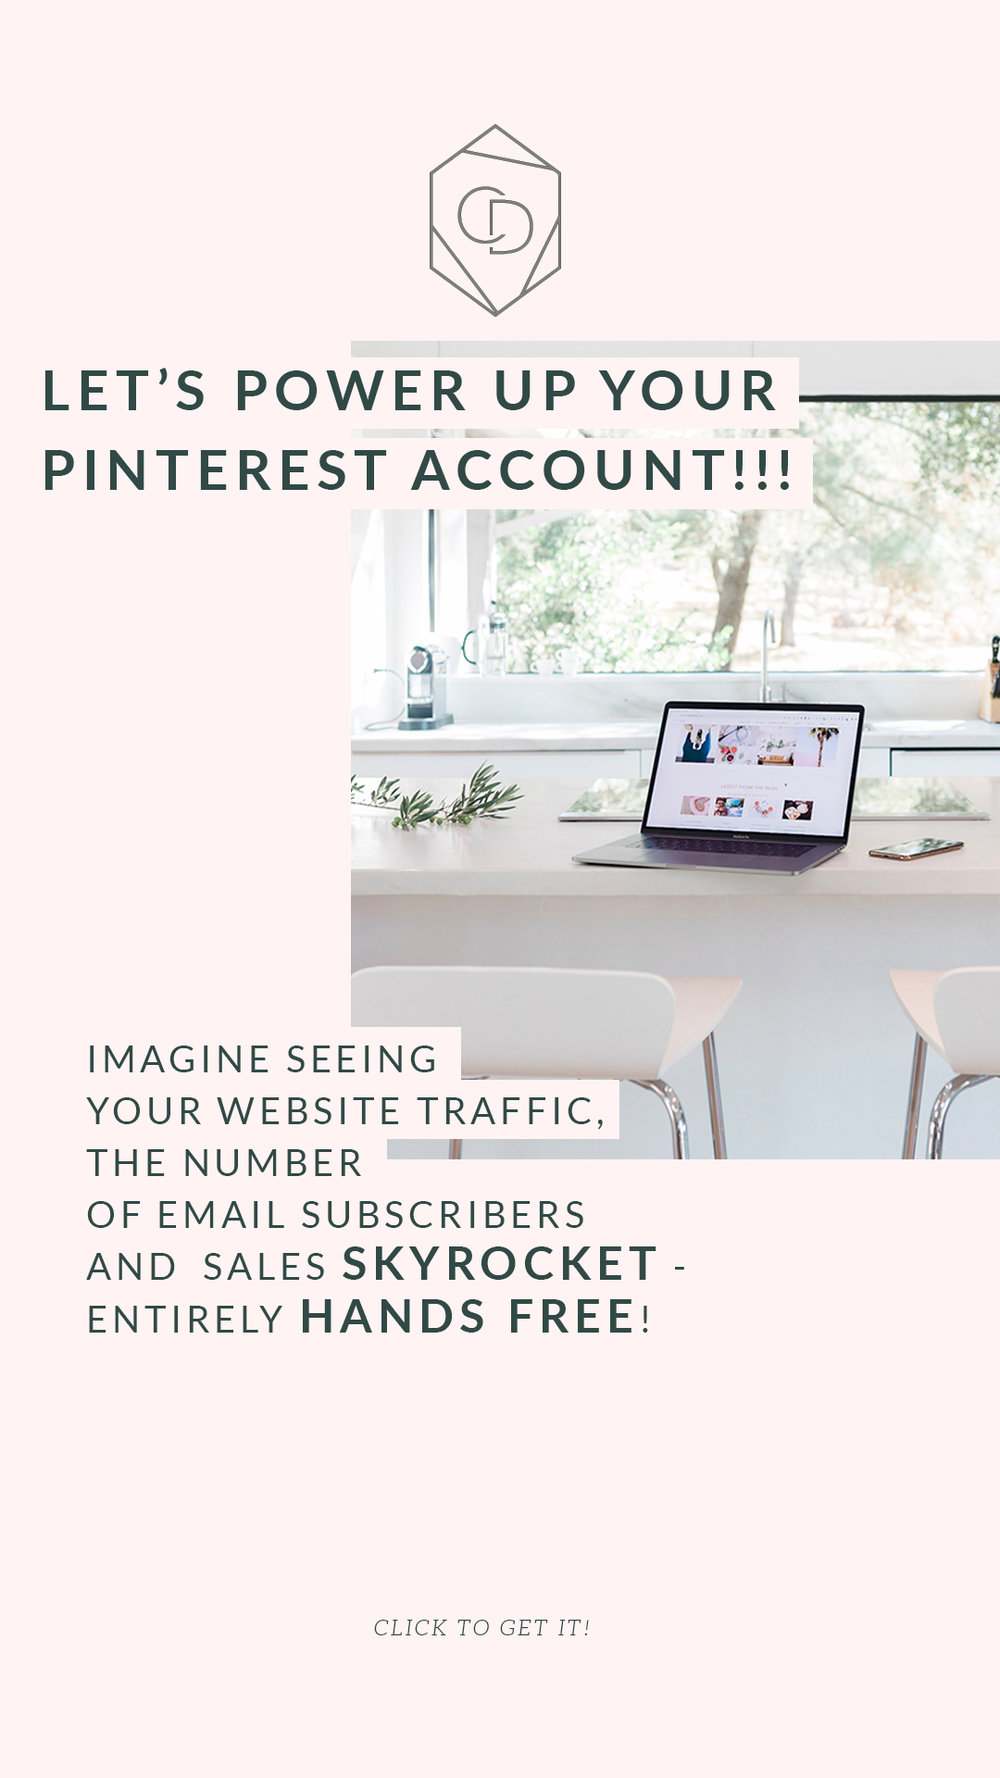 Hand off your Pinterest account to us to grow your blog traffic and website daily  page views. We will use the same tools I used to grow my accounts and my clients accounts to get over one million monthly views but also grow their monthly email subscribers. #emailmarketing #blogging #pinterestmarketing #socialmediamarketing #girboss